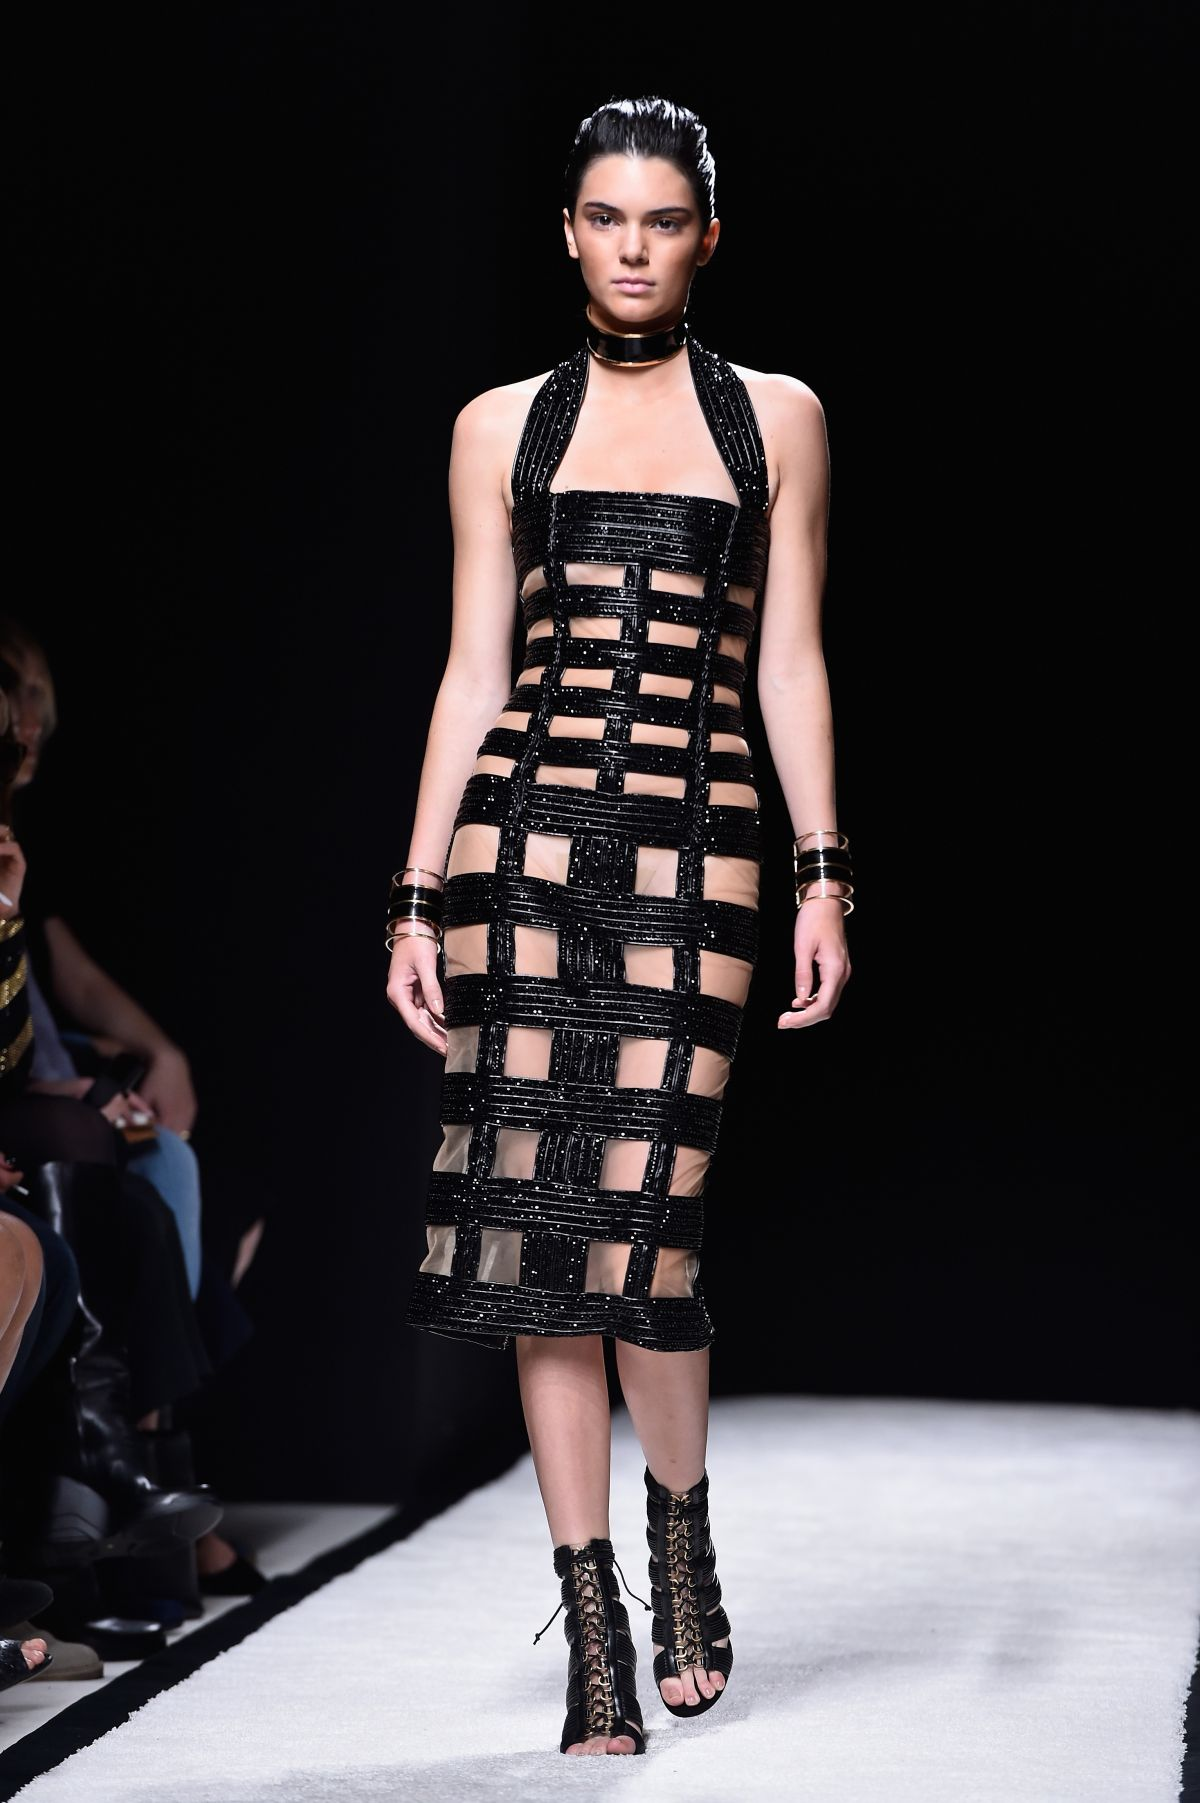 Kendall Jenner On The Runway Of Balmain Fashion Show In